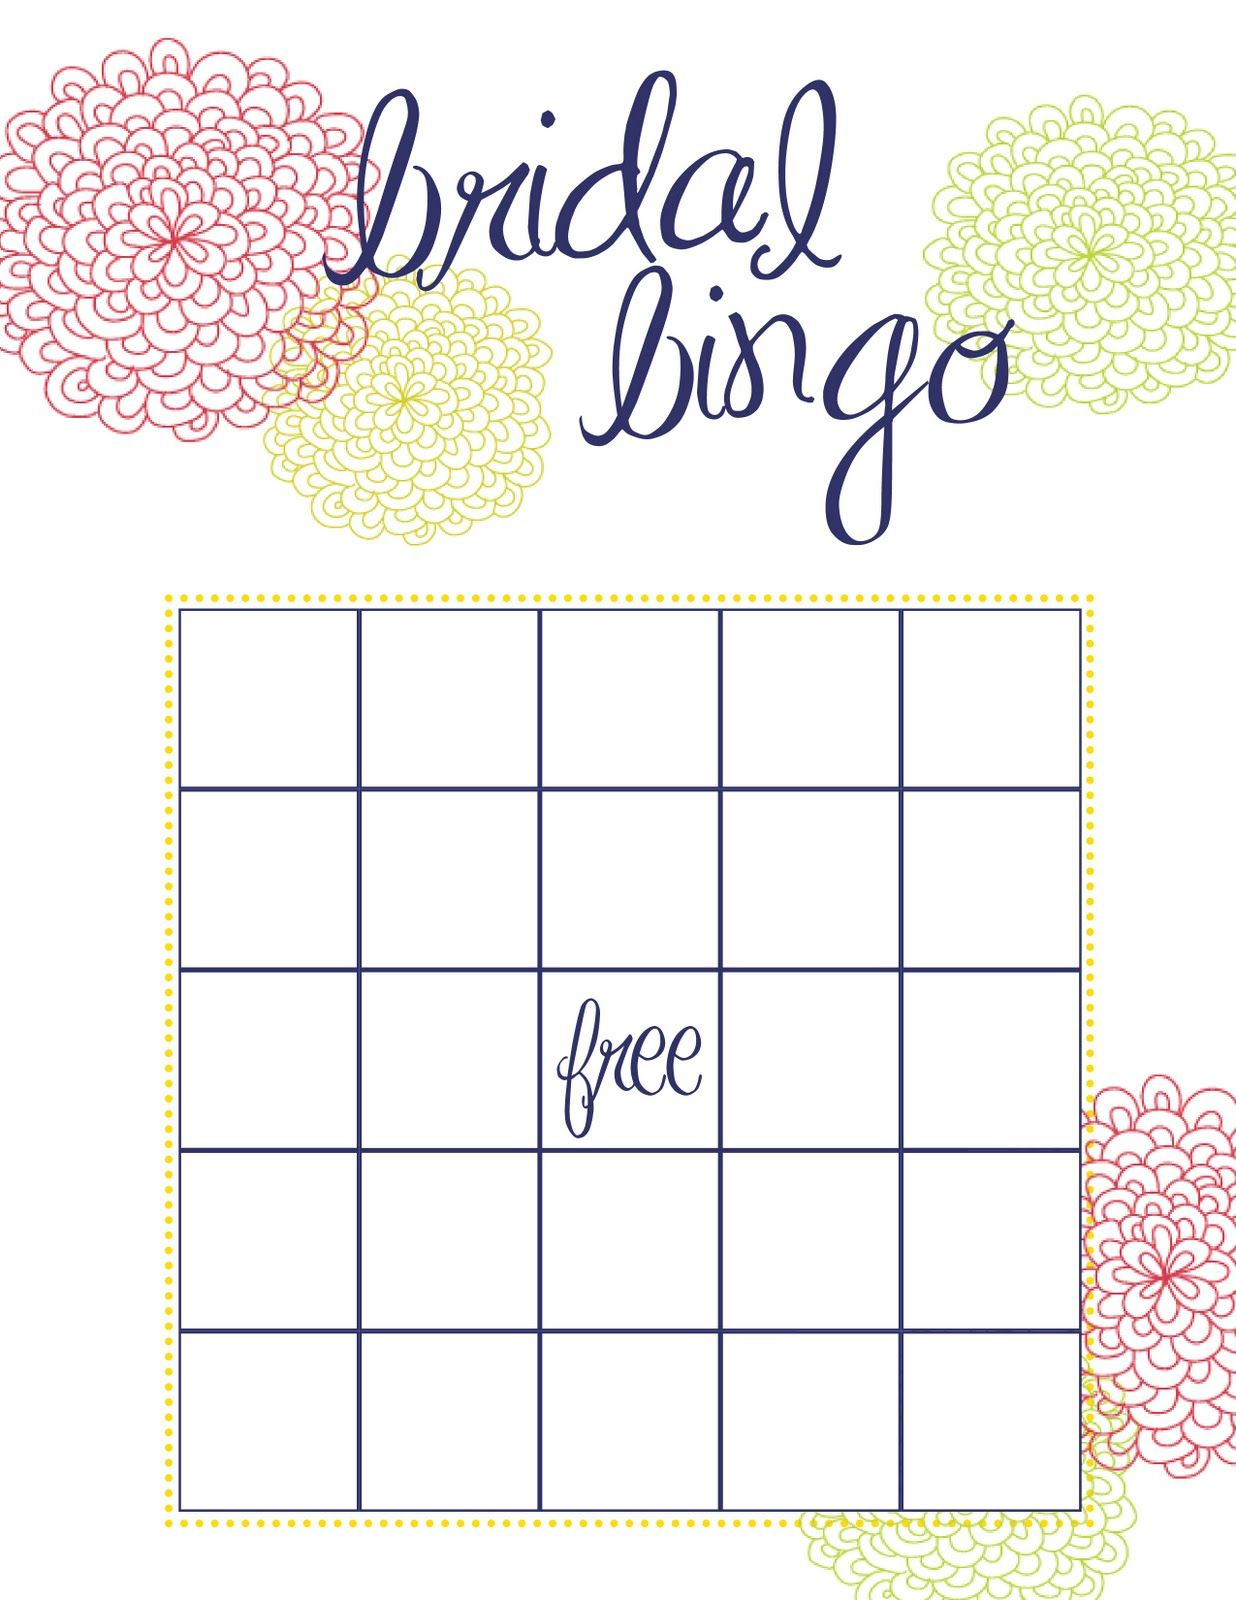 Beganwithabow Busy Weekend In The Bow World Bridal Shower Bingo Bridal Bingo Bridal Shower Cards Bridal bingo free template blank